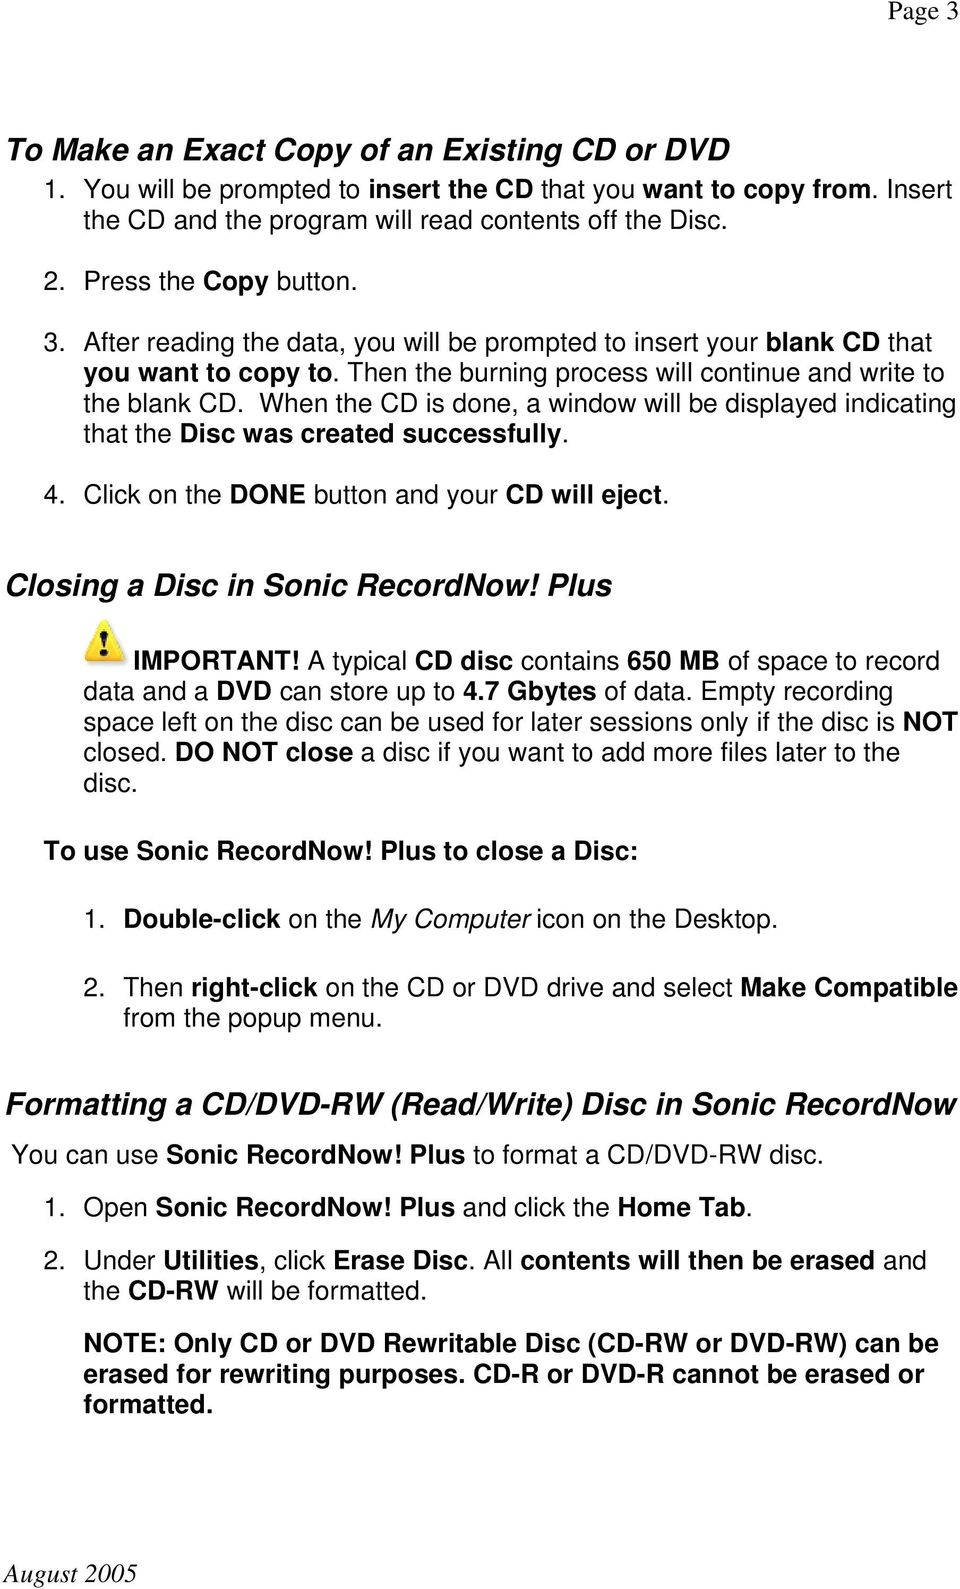 When the CD is done, a window will be displayed indicating that the Disc was created successfully. 4. Click on the DONE button and your CD will eject. Closing a Disc in Sonic RecordNow!